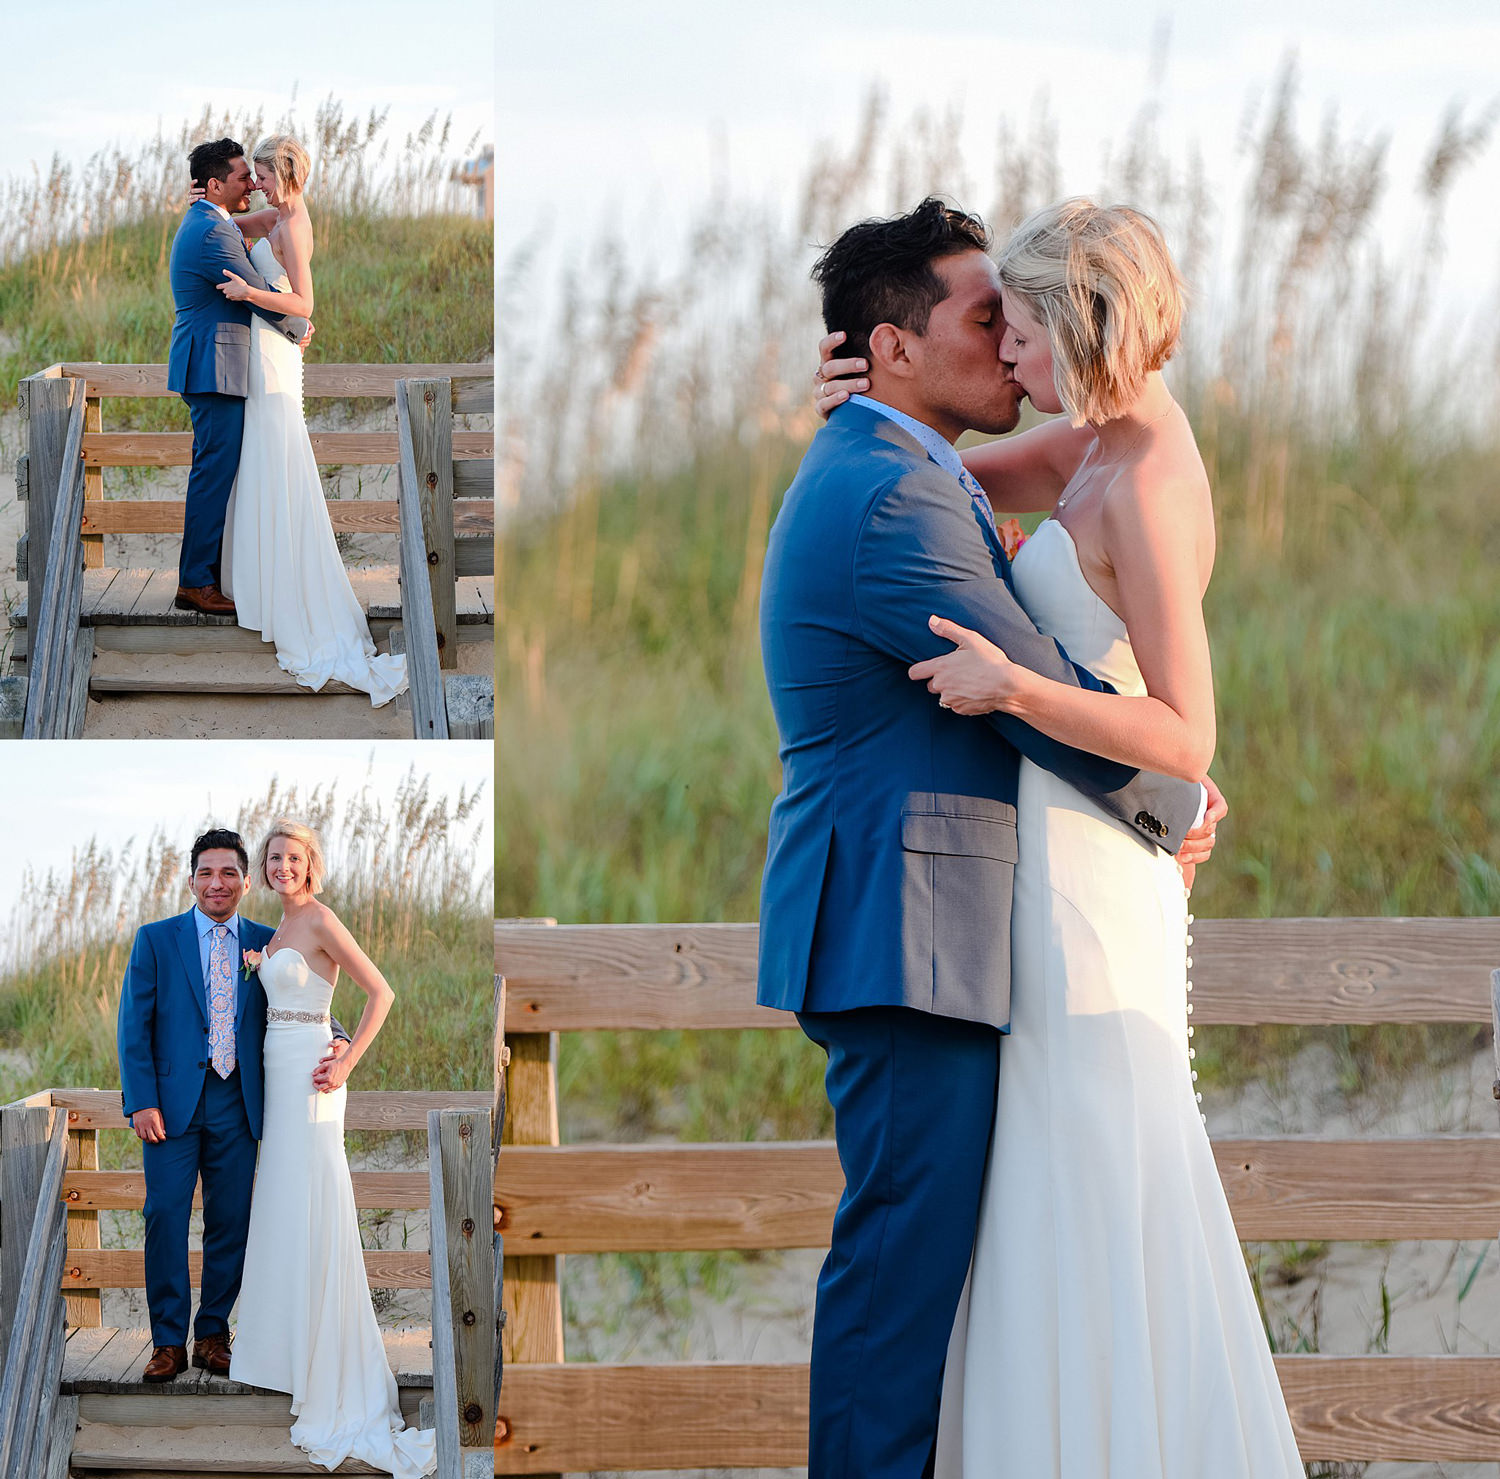 sandbridge-beach-wedding-bride-and-groom-melissa-bliss-photography-virginia-photographer.jpg